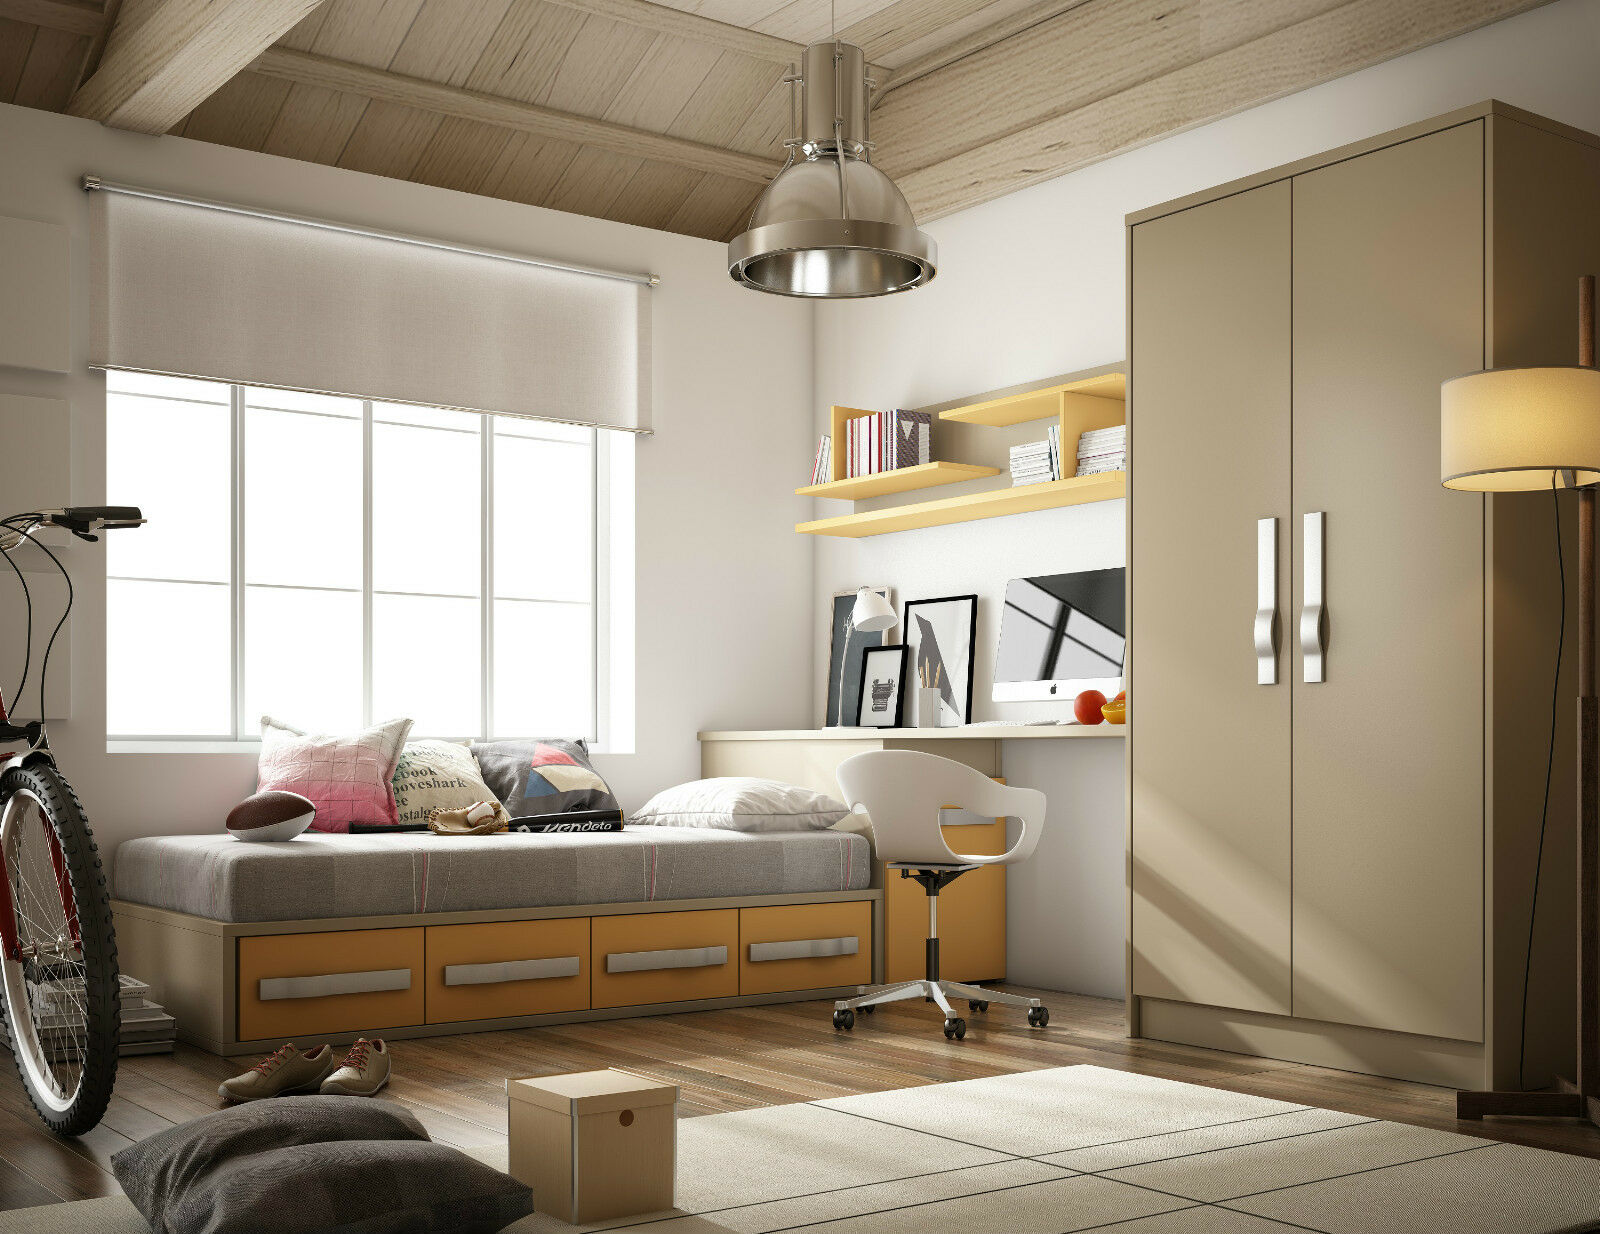 jugendzimmer cool in 41 farben geplant kleiderschrank. Black Bedroom Furniture Sets. Home Design Ideas